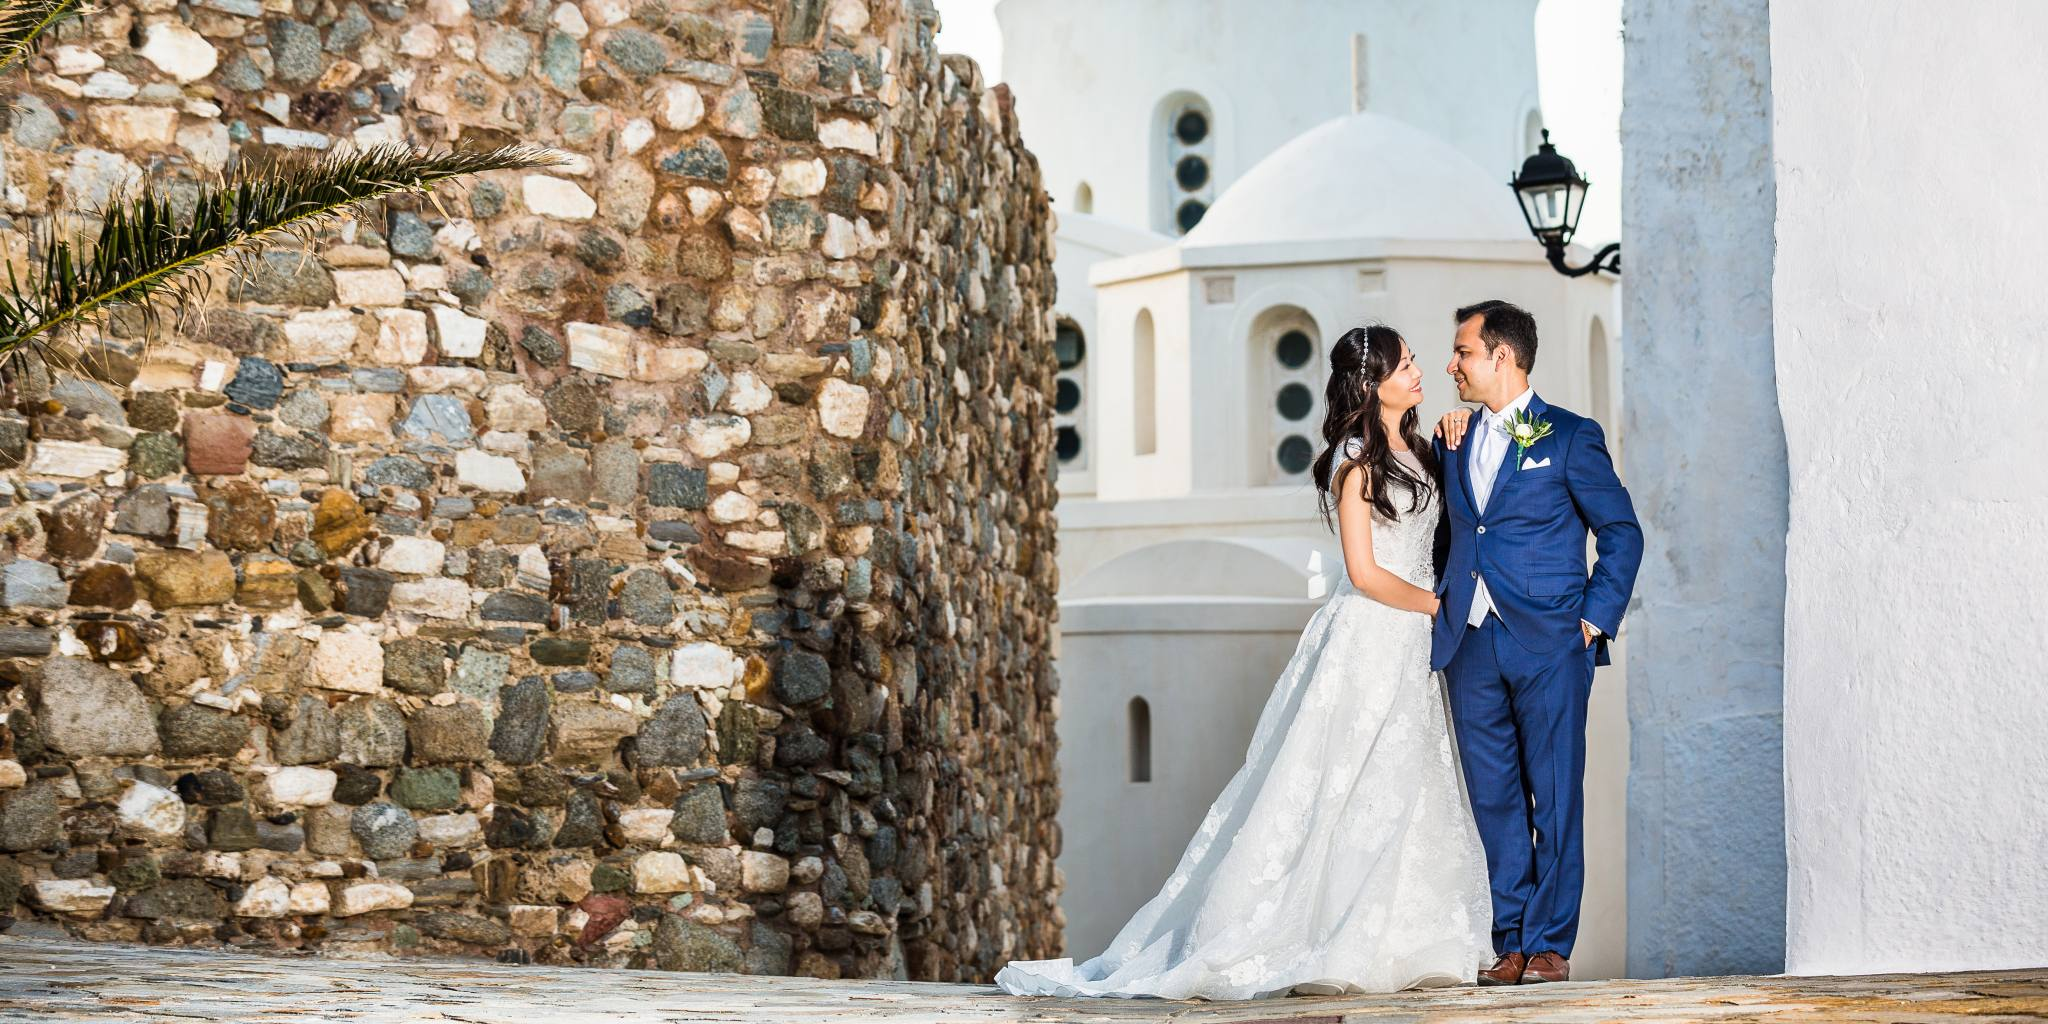 Stylish couple wedding in the Cyclades